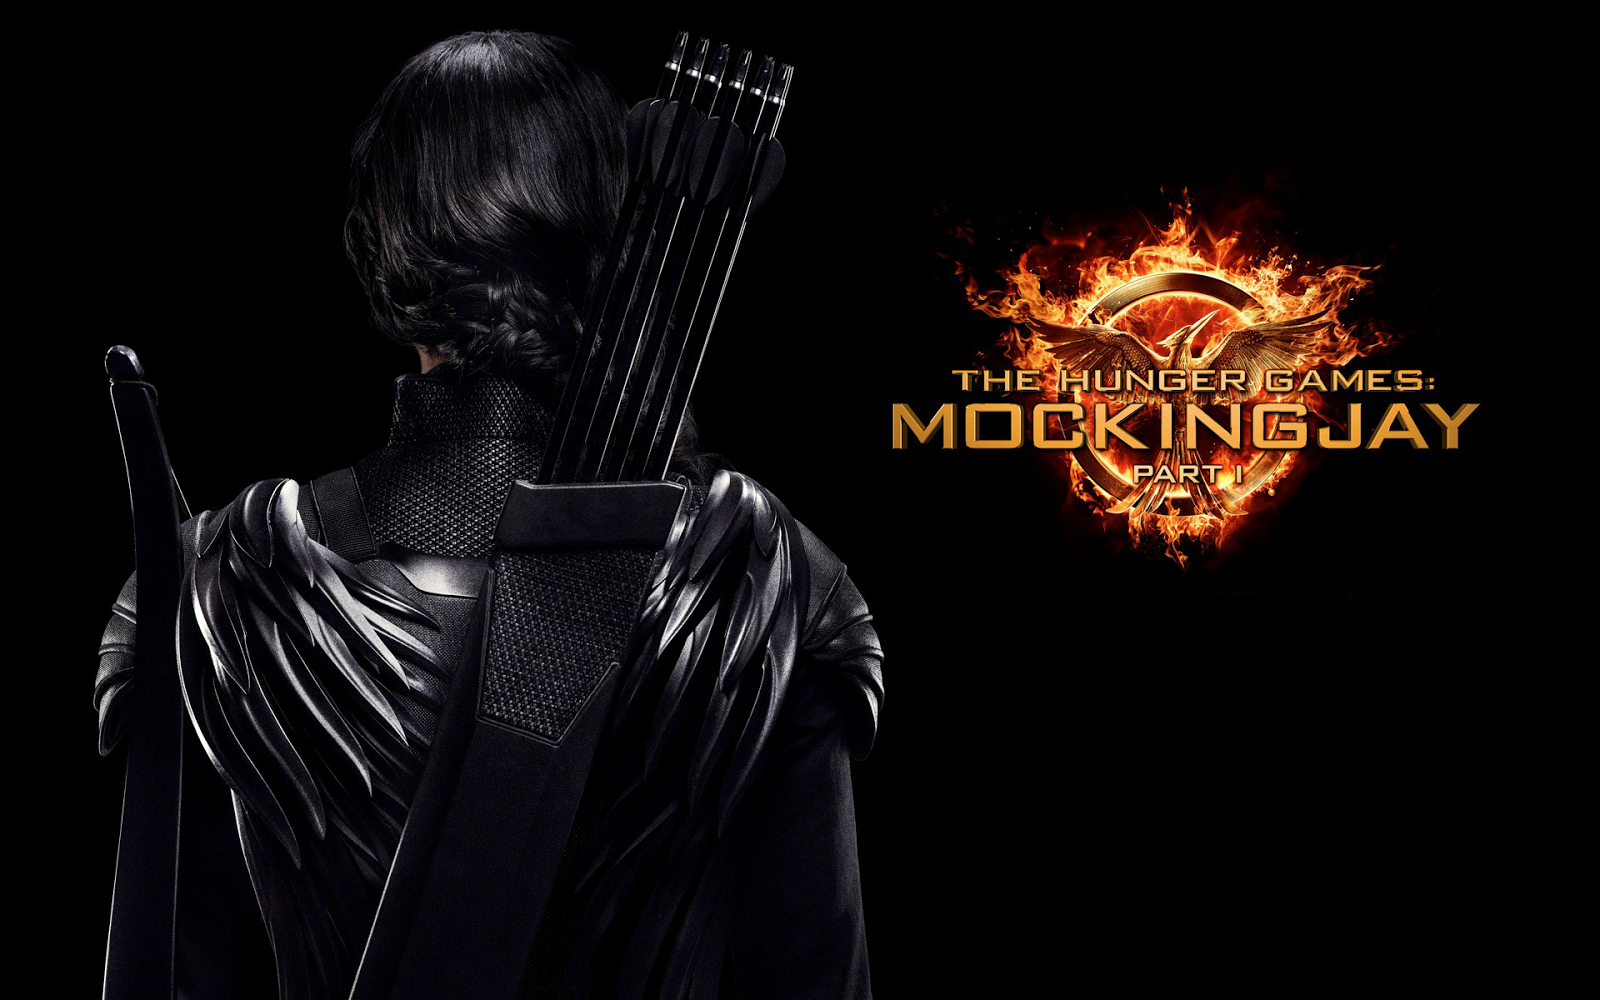 The Hunger Games: Mockingjay - Part 1 (2014) - Rotten Tomatoes